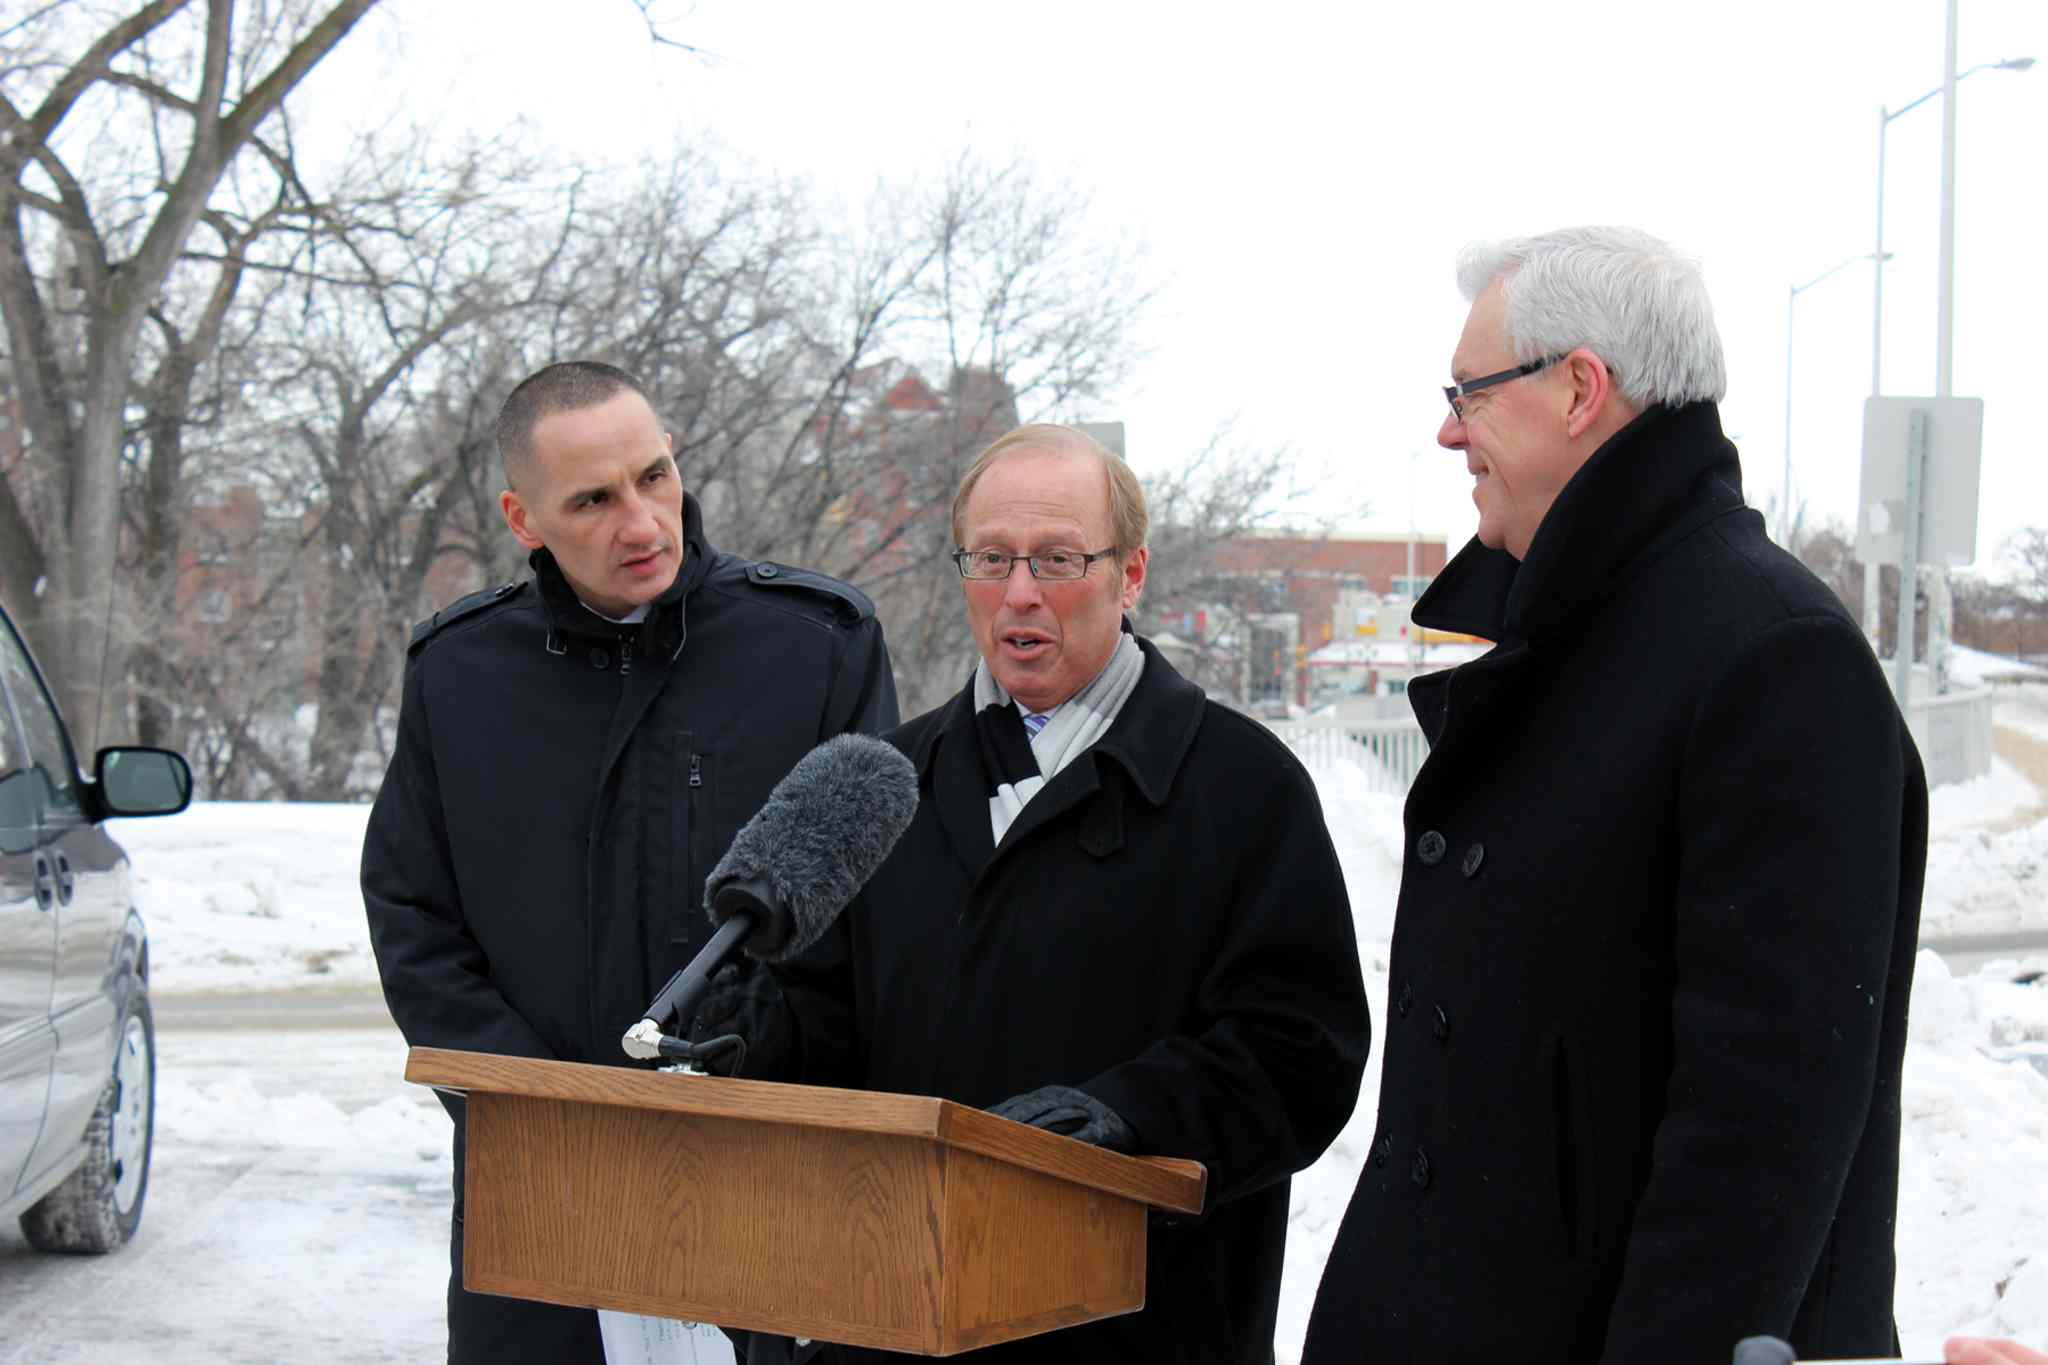 From left, Kevin Chief, provincial minister of children and youth opportunities and minister responsible for relations with the City of Winnipeg, Winnipeg mayor Sam Katz, and Manitoba Premier Greg Selinger recently announced a $66-million boost over the next five years to renew Winnipeg streets, backlanes and sidewalks.